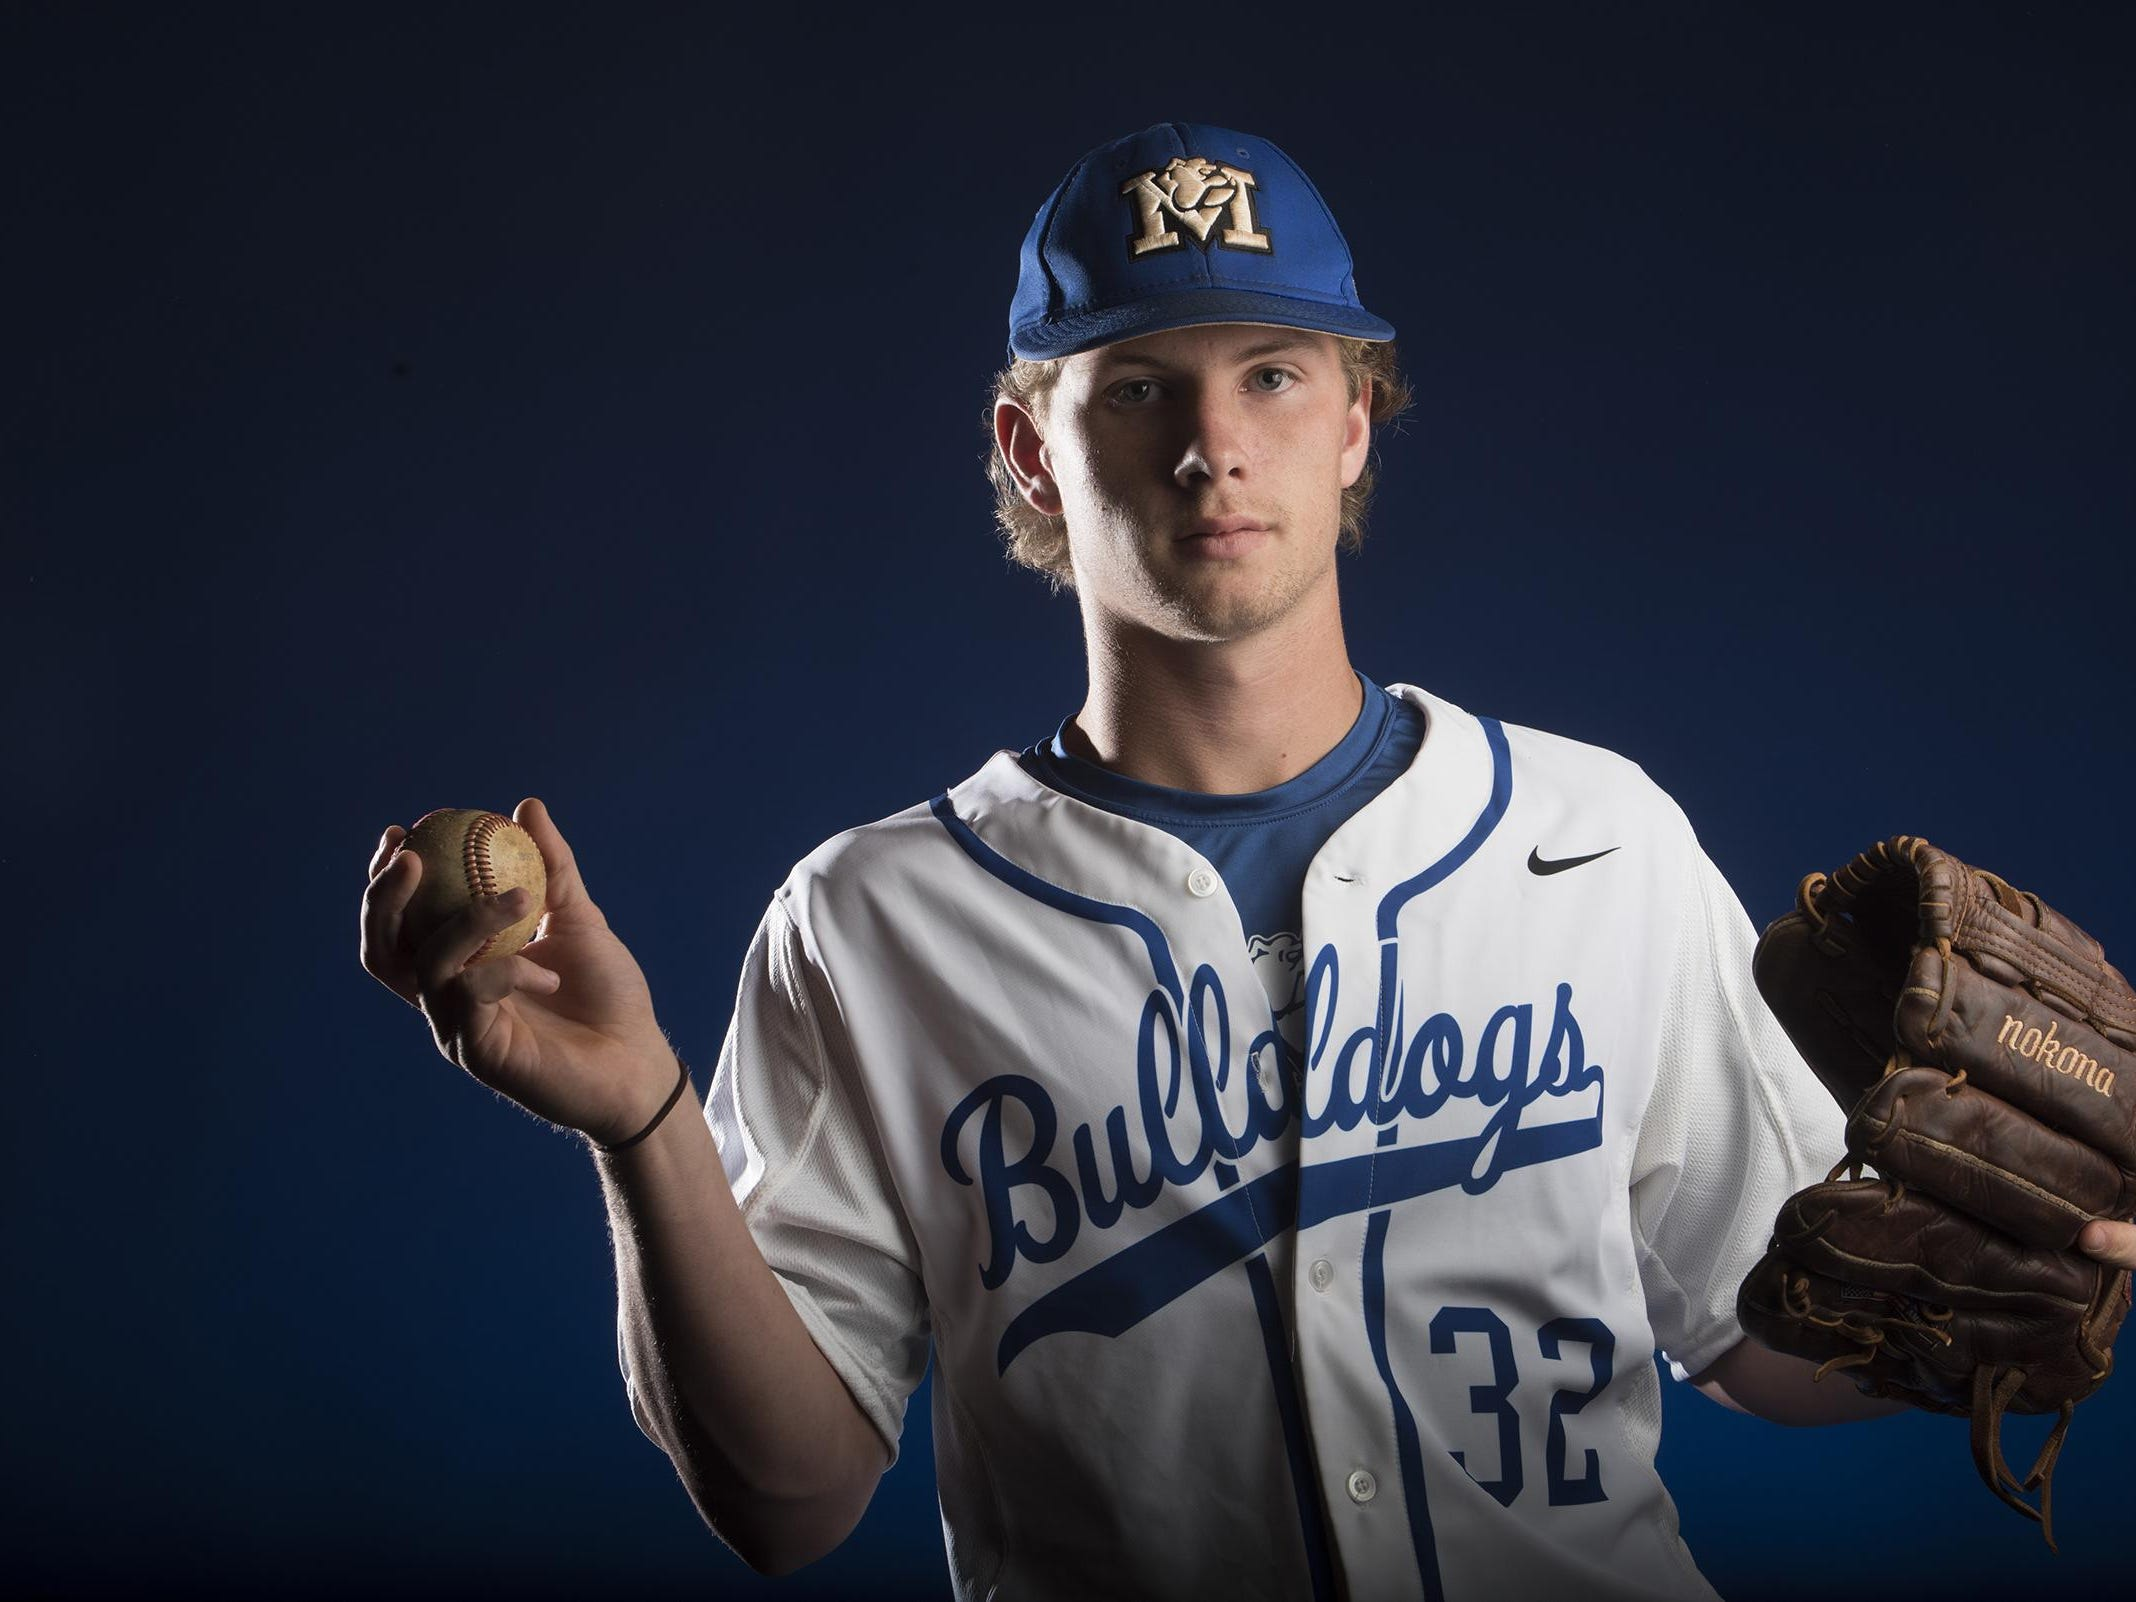 Marbury's Jared Nixon batted .549 with 10 home runs and 40 RBIs.